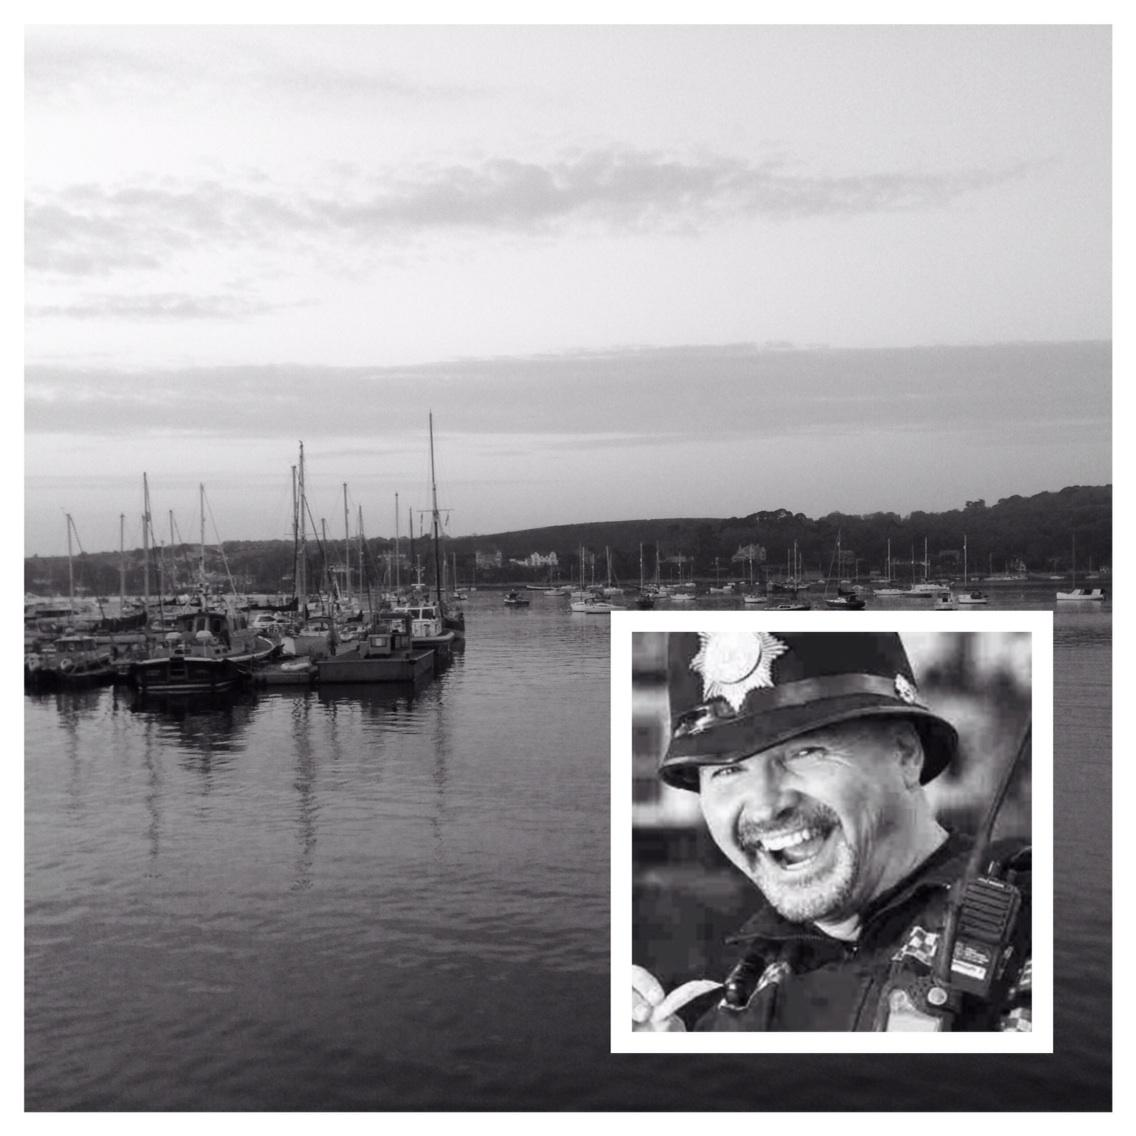 Falmouth remembers their local bobby Andy Hocking: 'he was the epitome of community policing' #r4today